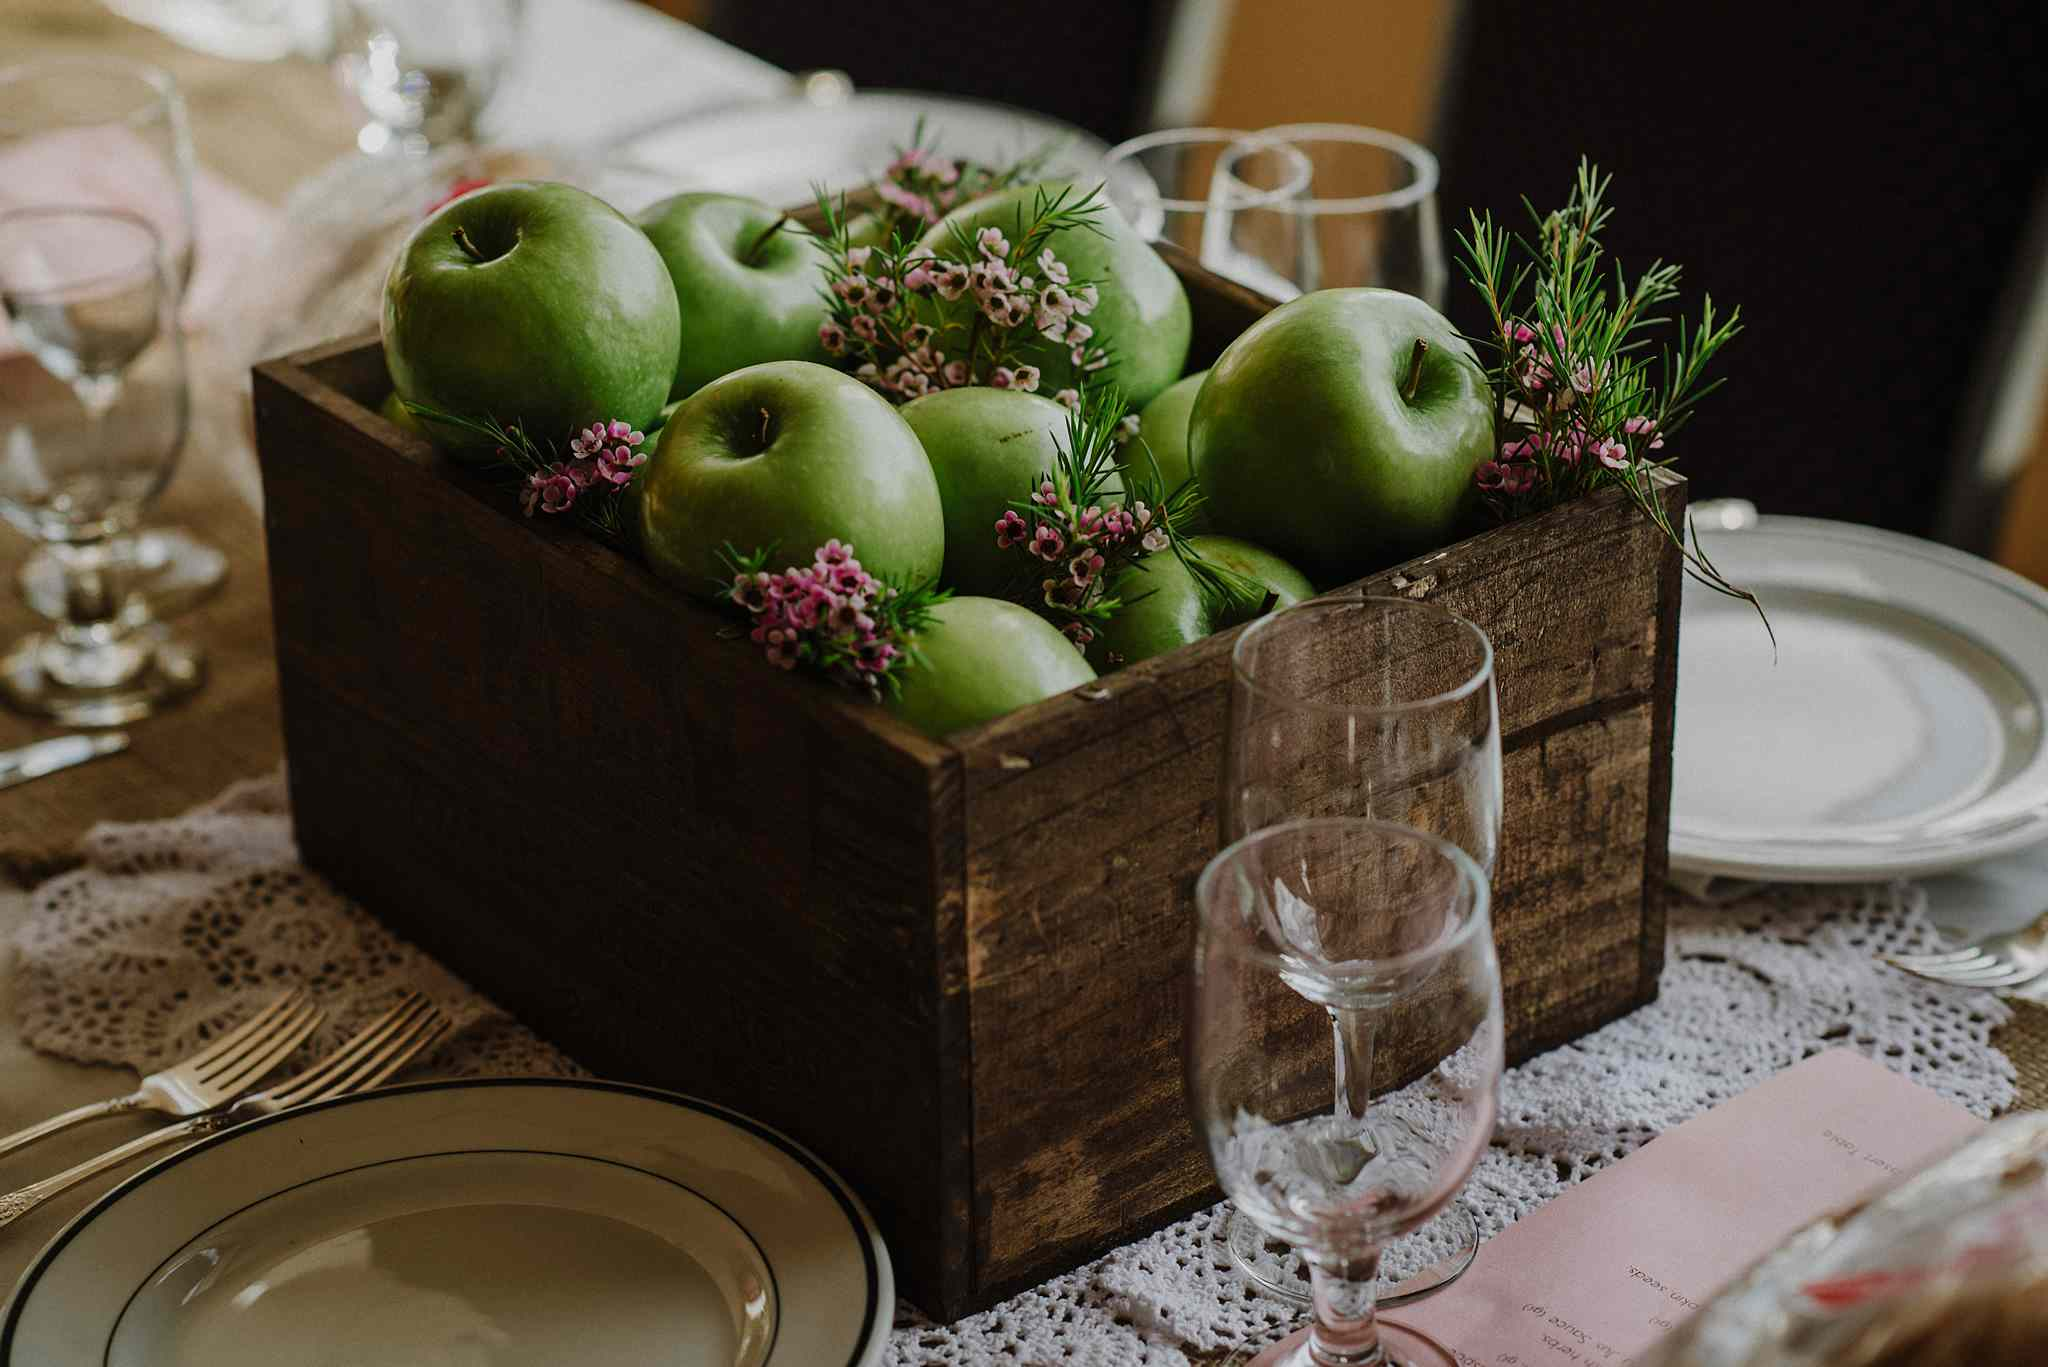 Green apples in a wooden box as a centerpiece